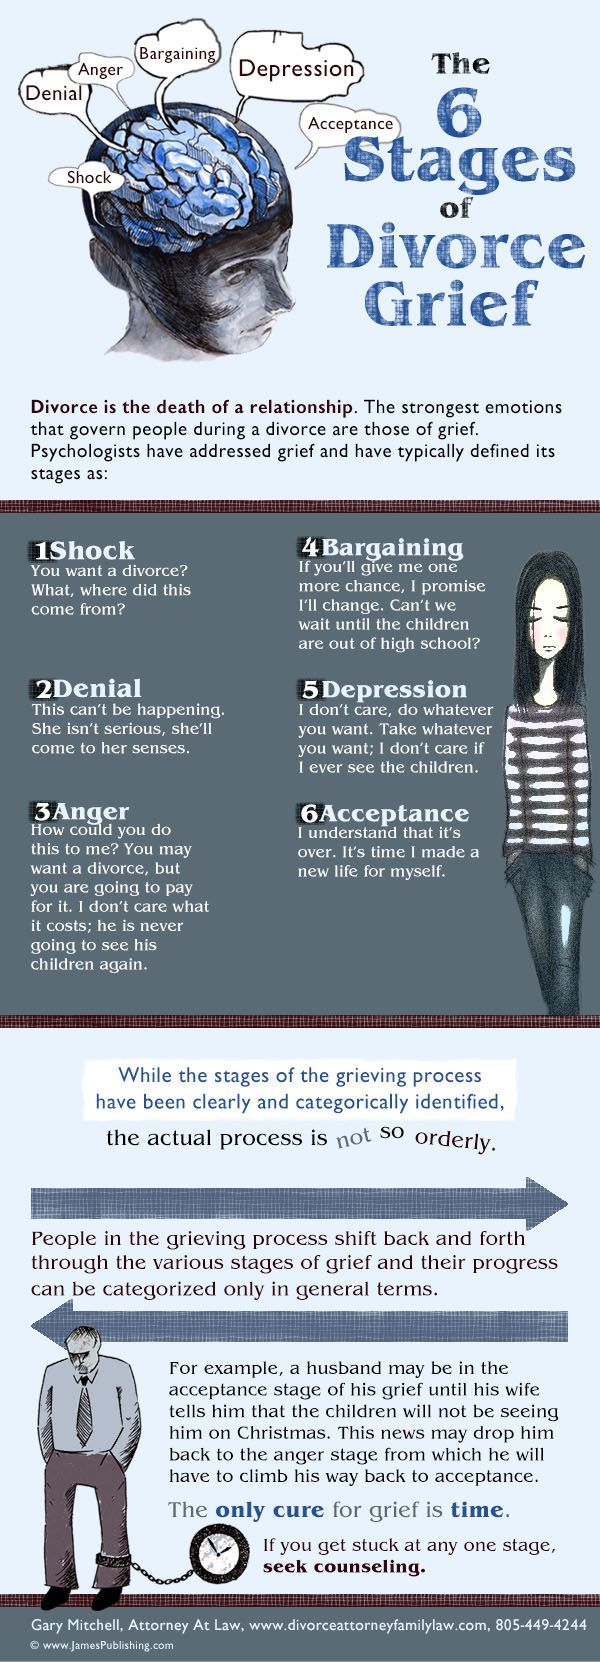 23 best divorce images on pinterest thoughts divorce and divorce six stages of divorce grief solutioingenieria Choice Image